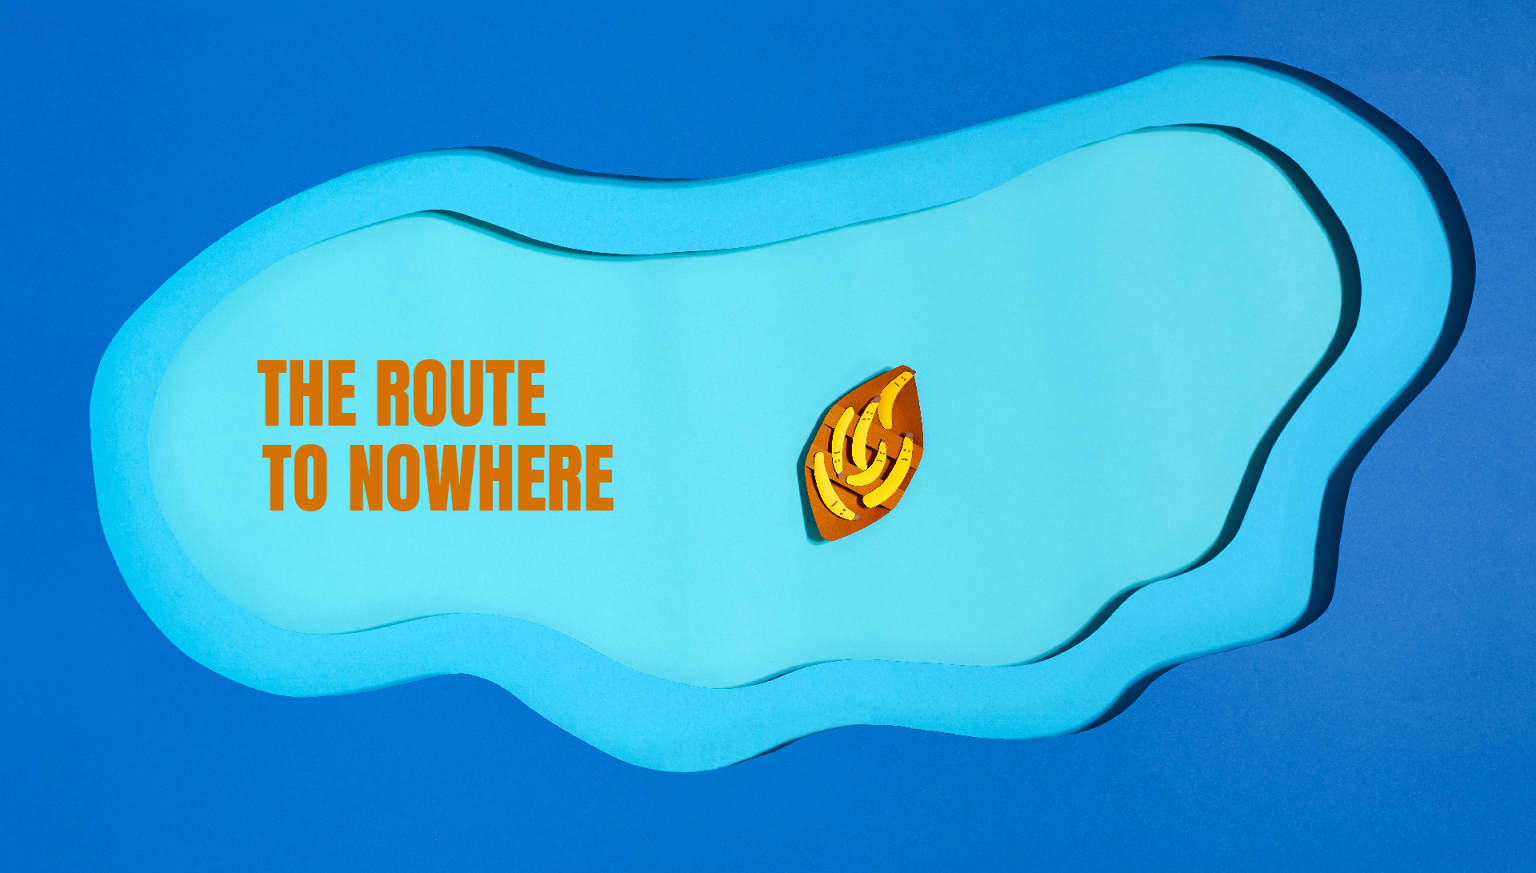 The Route to Nowhere